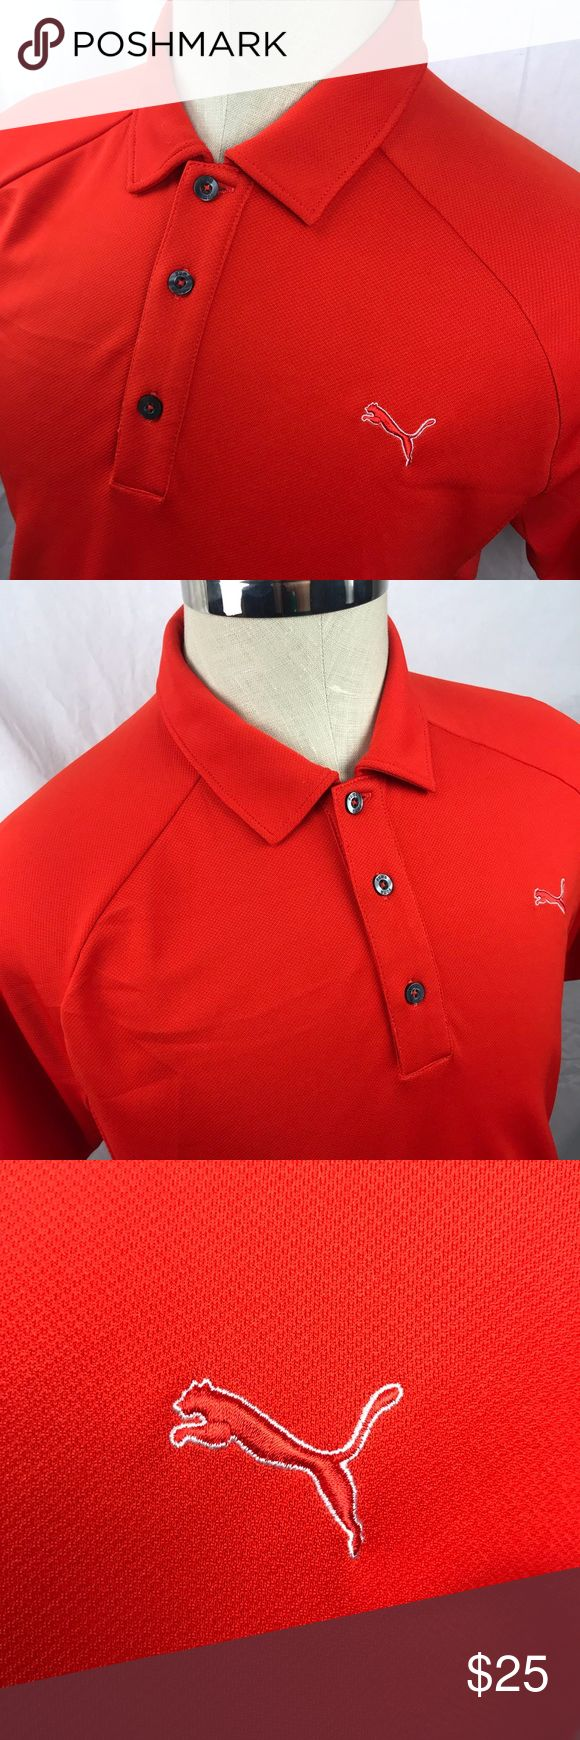 "Men's medium dark orange Puma polo shirt Great condition!   Chest: 21"" Length: 29""  Thanks for looking and please feel free to shoot me a message if you have any questions. Thanks! Puma Shirts Polos"